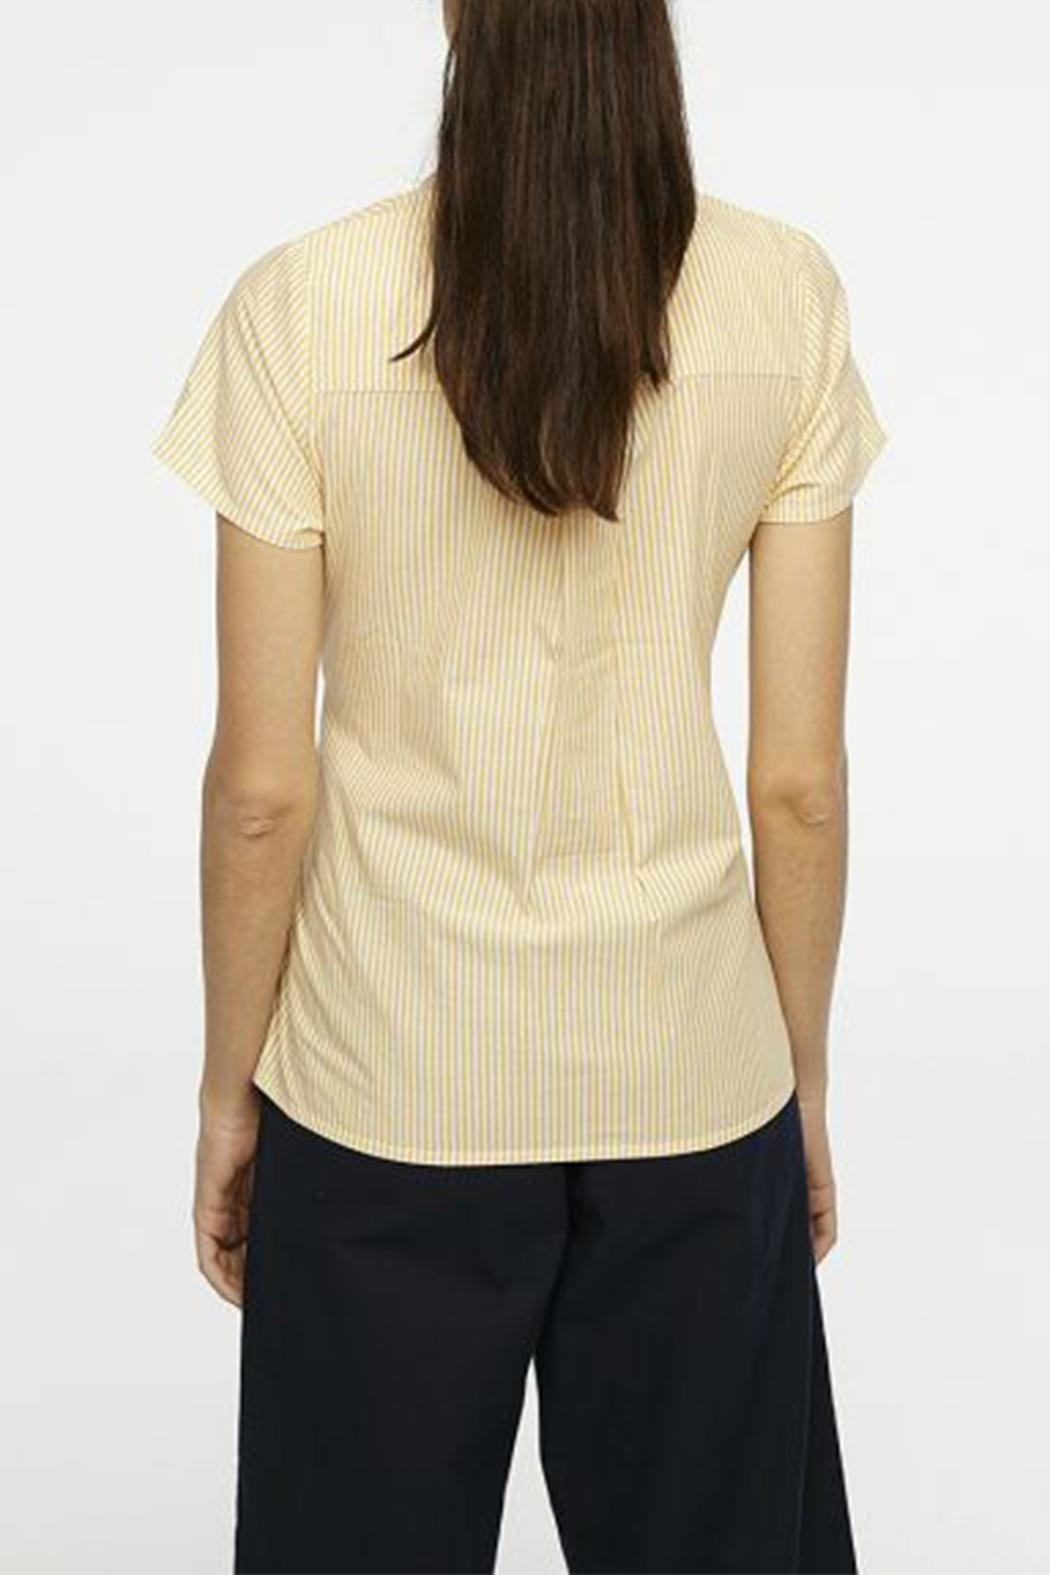 Compania Fantastica Bow Button-Up Shirt - Front Full Image